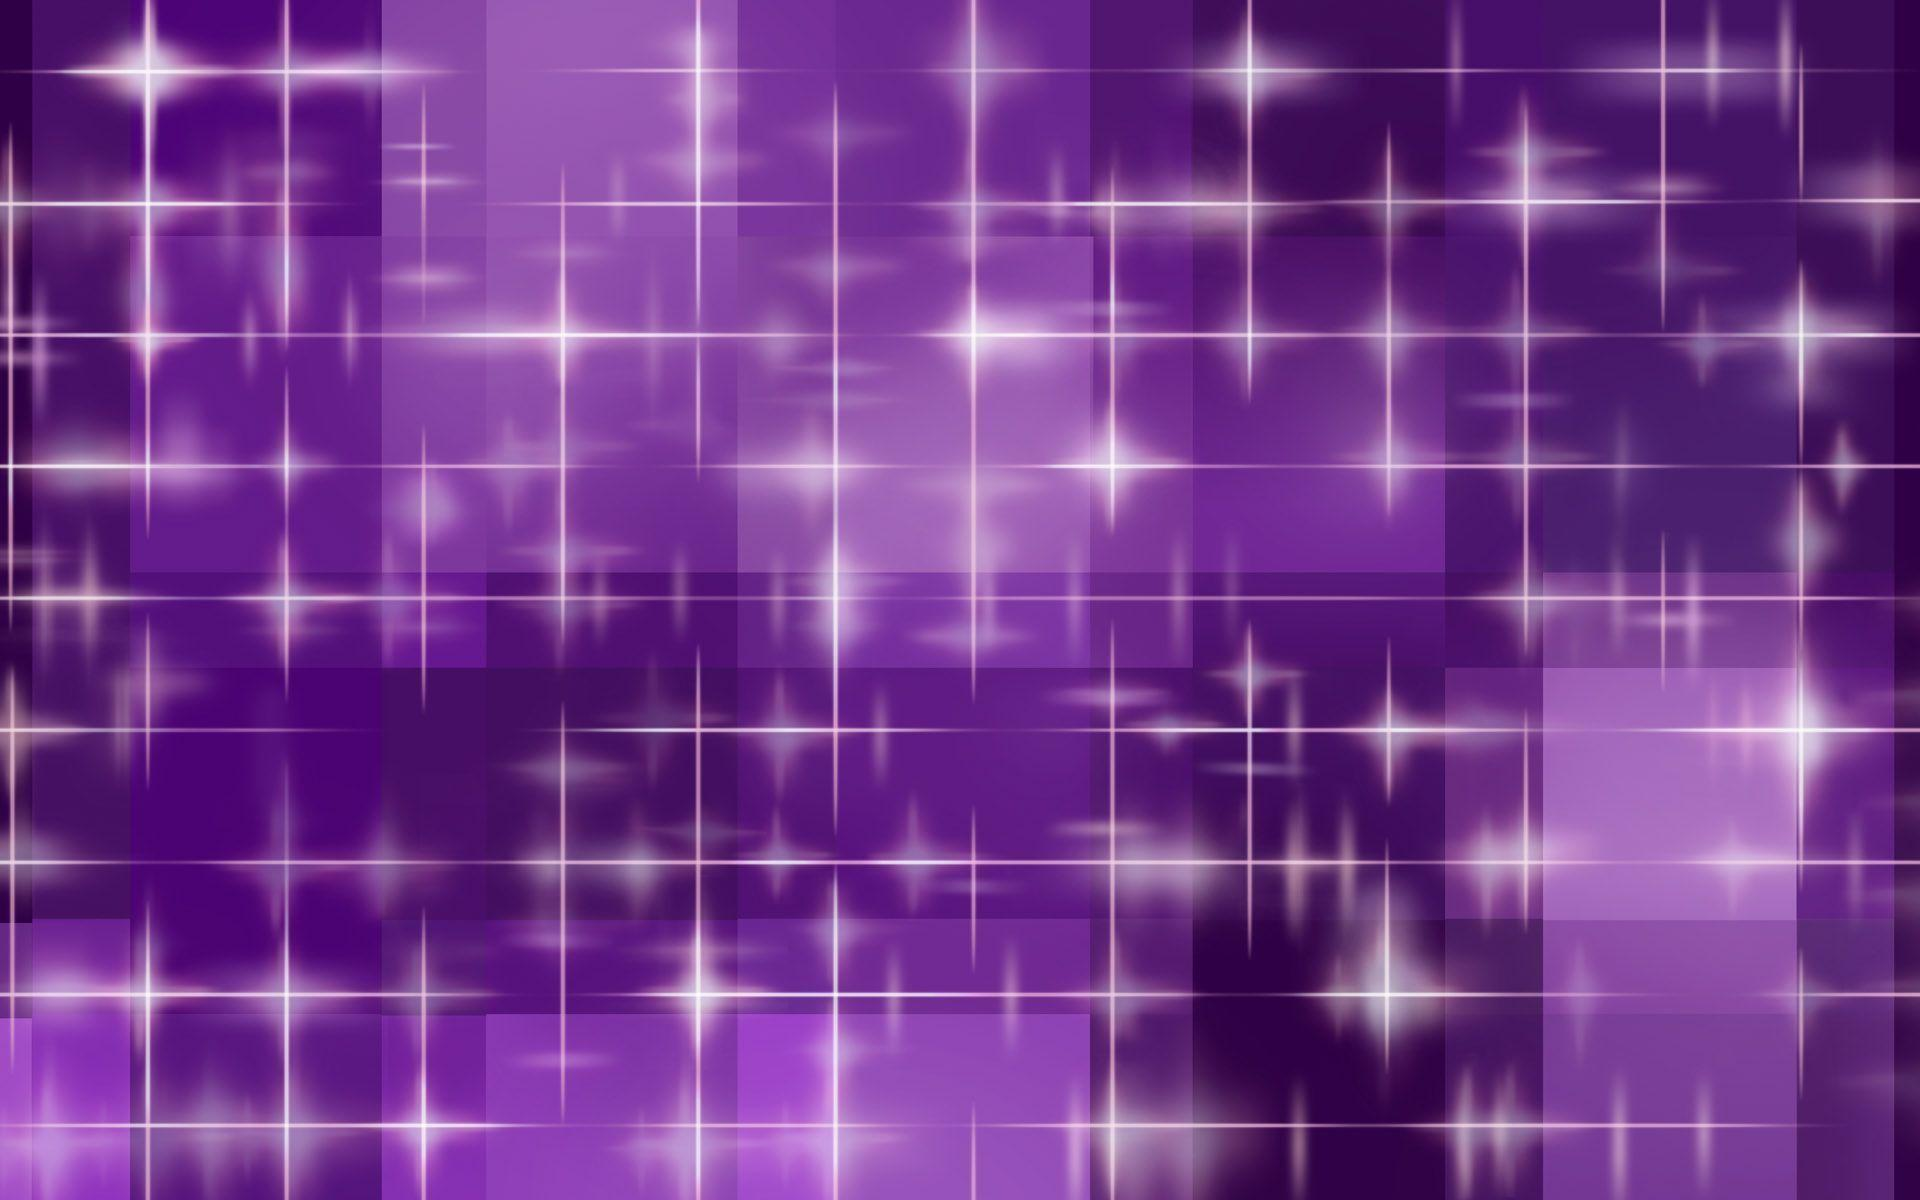 Cool Purple Iphone Wallpapers: Purple Backgrounds Wallpapers